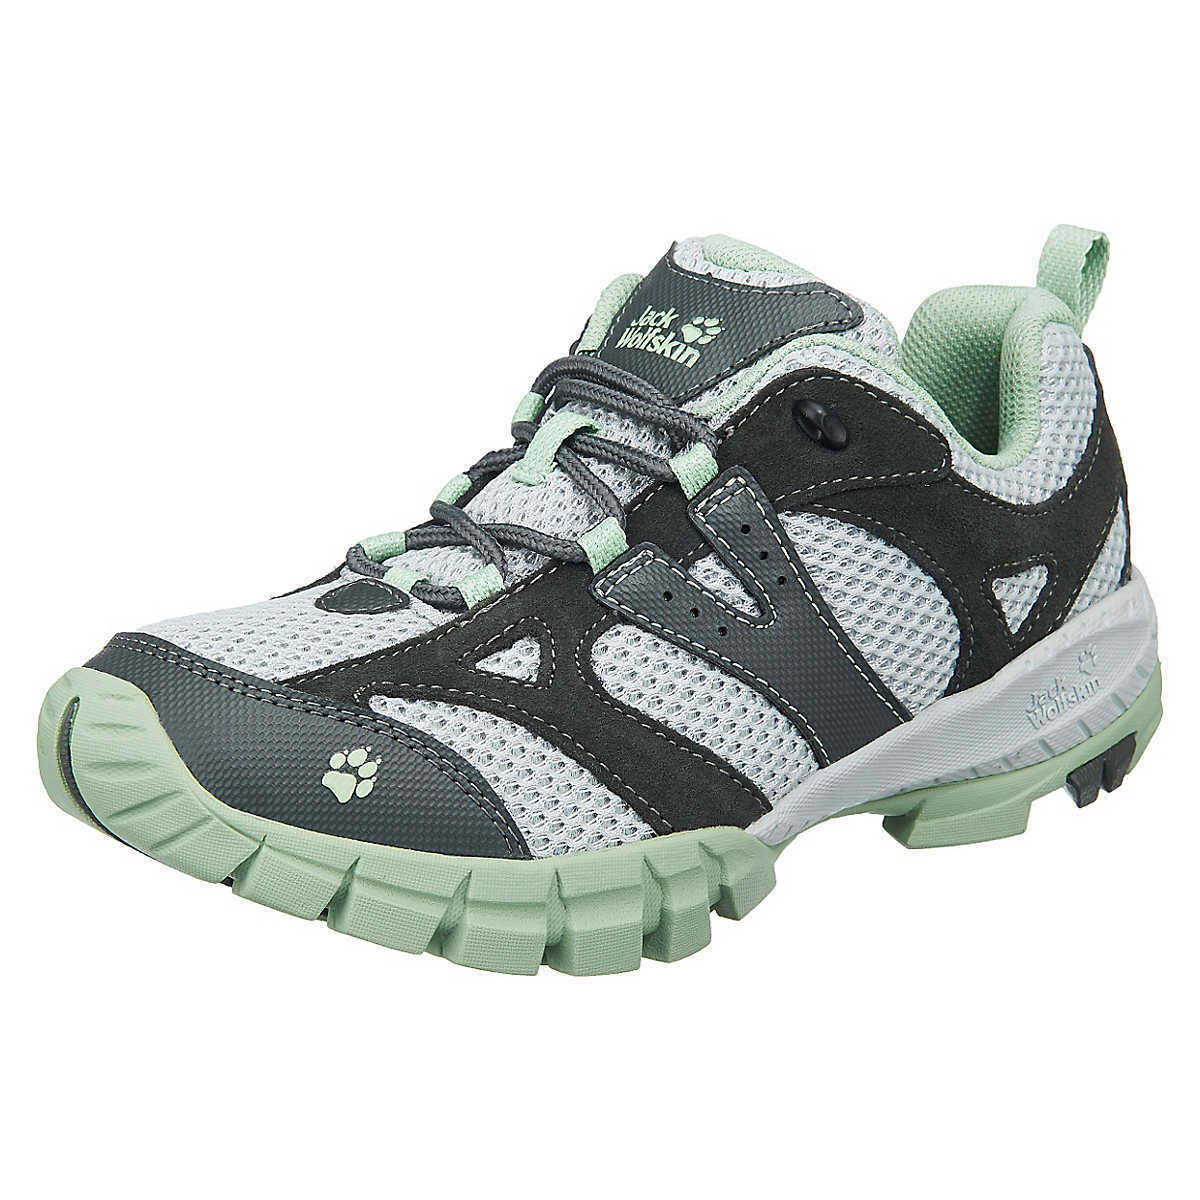 the latest ee727 ce697 Brand New Man trainers trainers trainers Nike Lunarglide 6 size 12 UK,47.5  Eu 48e469 ...